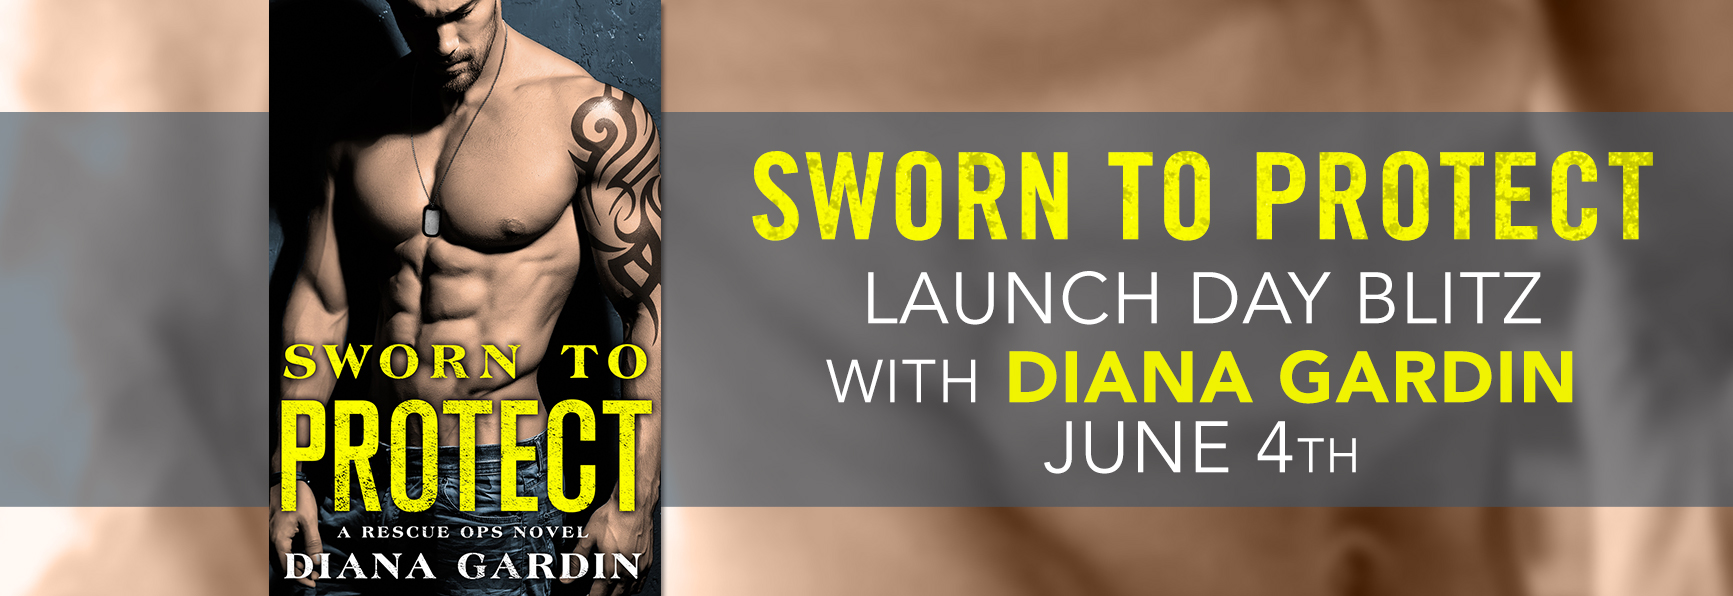 Sworn to Protect by Diana Gardin Review, Excerpt and Giveaway